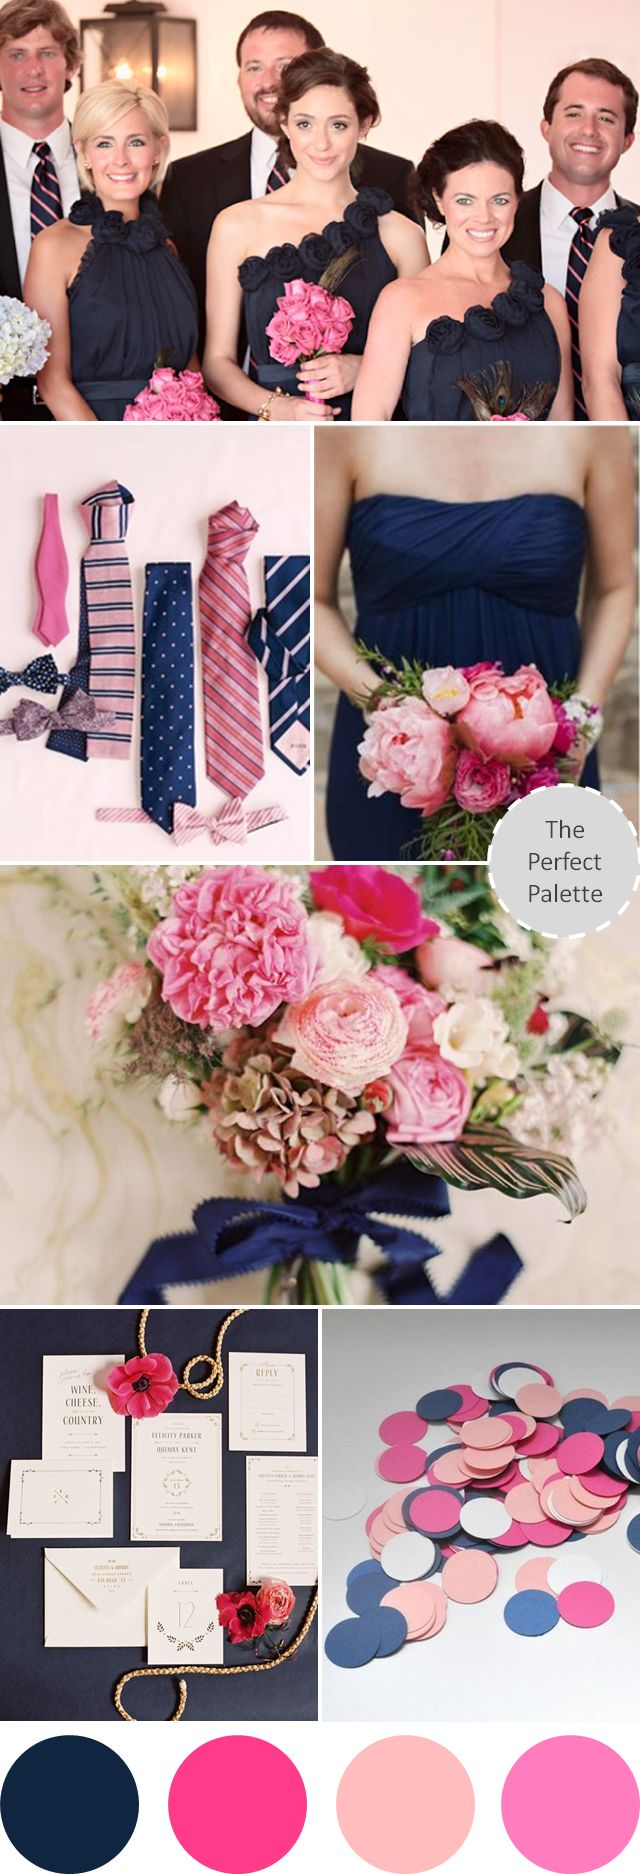 I don't much want blue but Sophak does. I would prefer to have some pink. So maybe navy blue + silver for guys, pink + silver for girls to tie it all together?  ------------- Wedding Colors I Love | Navy Blue + Shades of Pink! http://www.theperfectpalette.com/2013/08/wedding-colors-i-love-navy-blue-shades.html